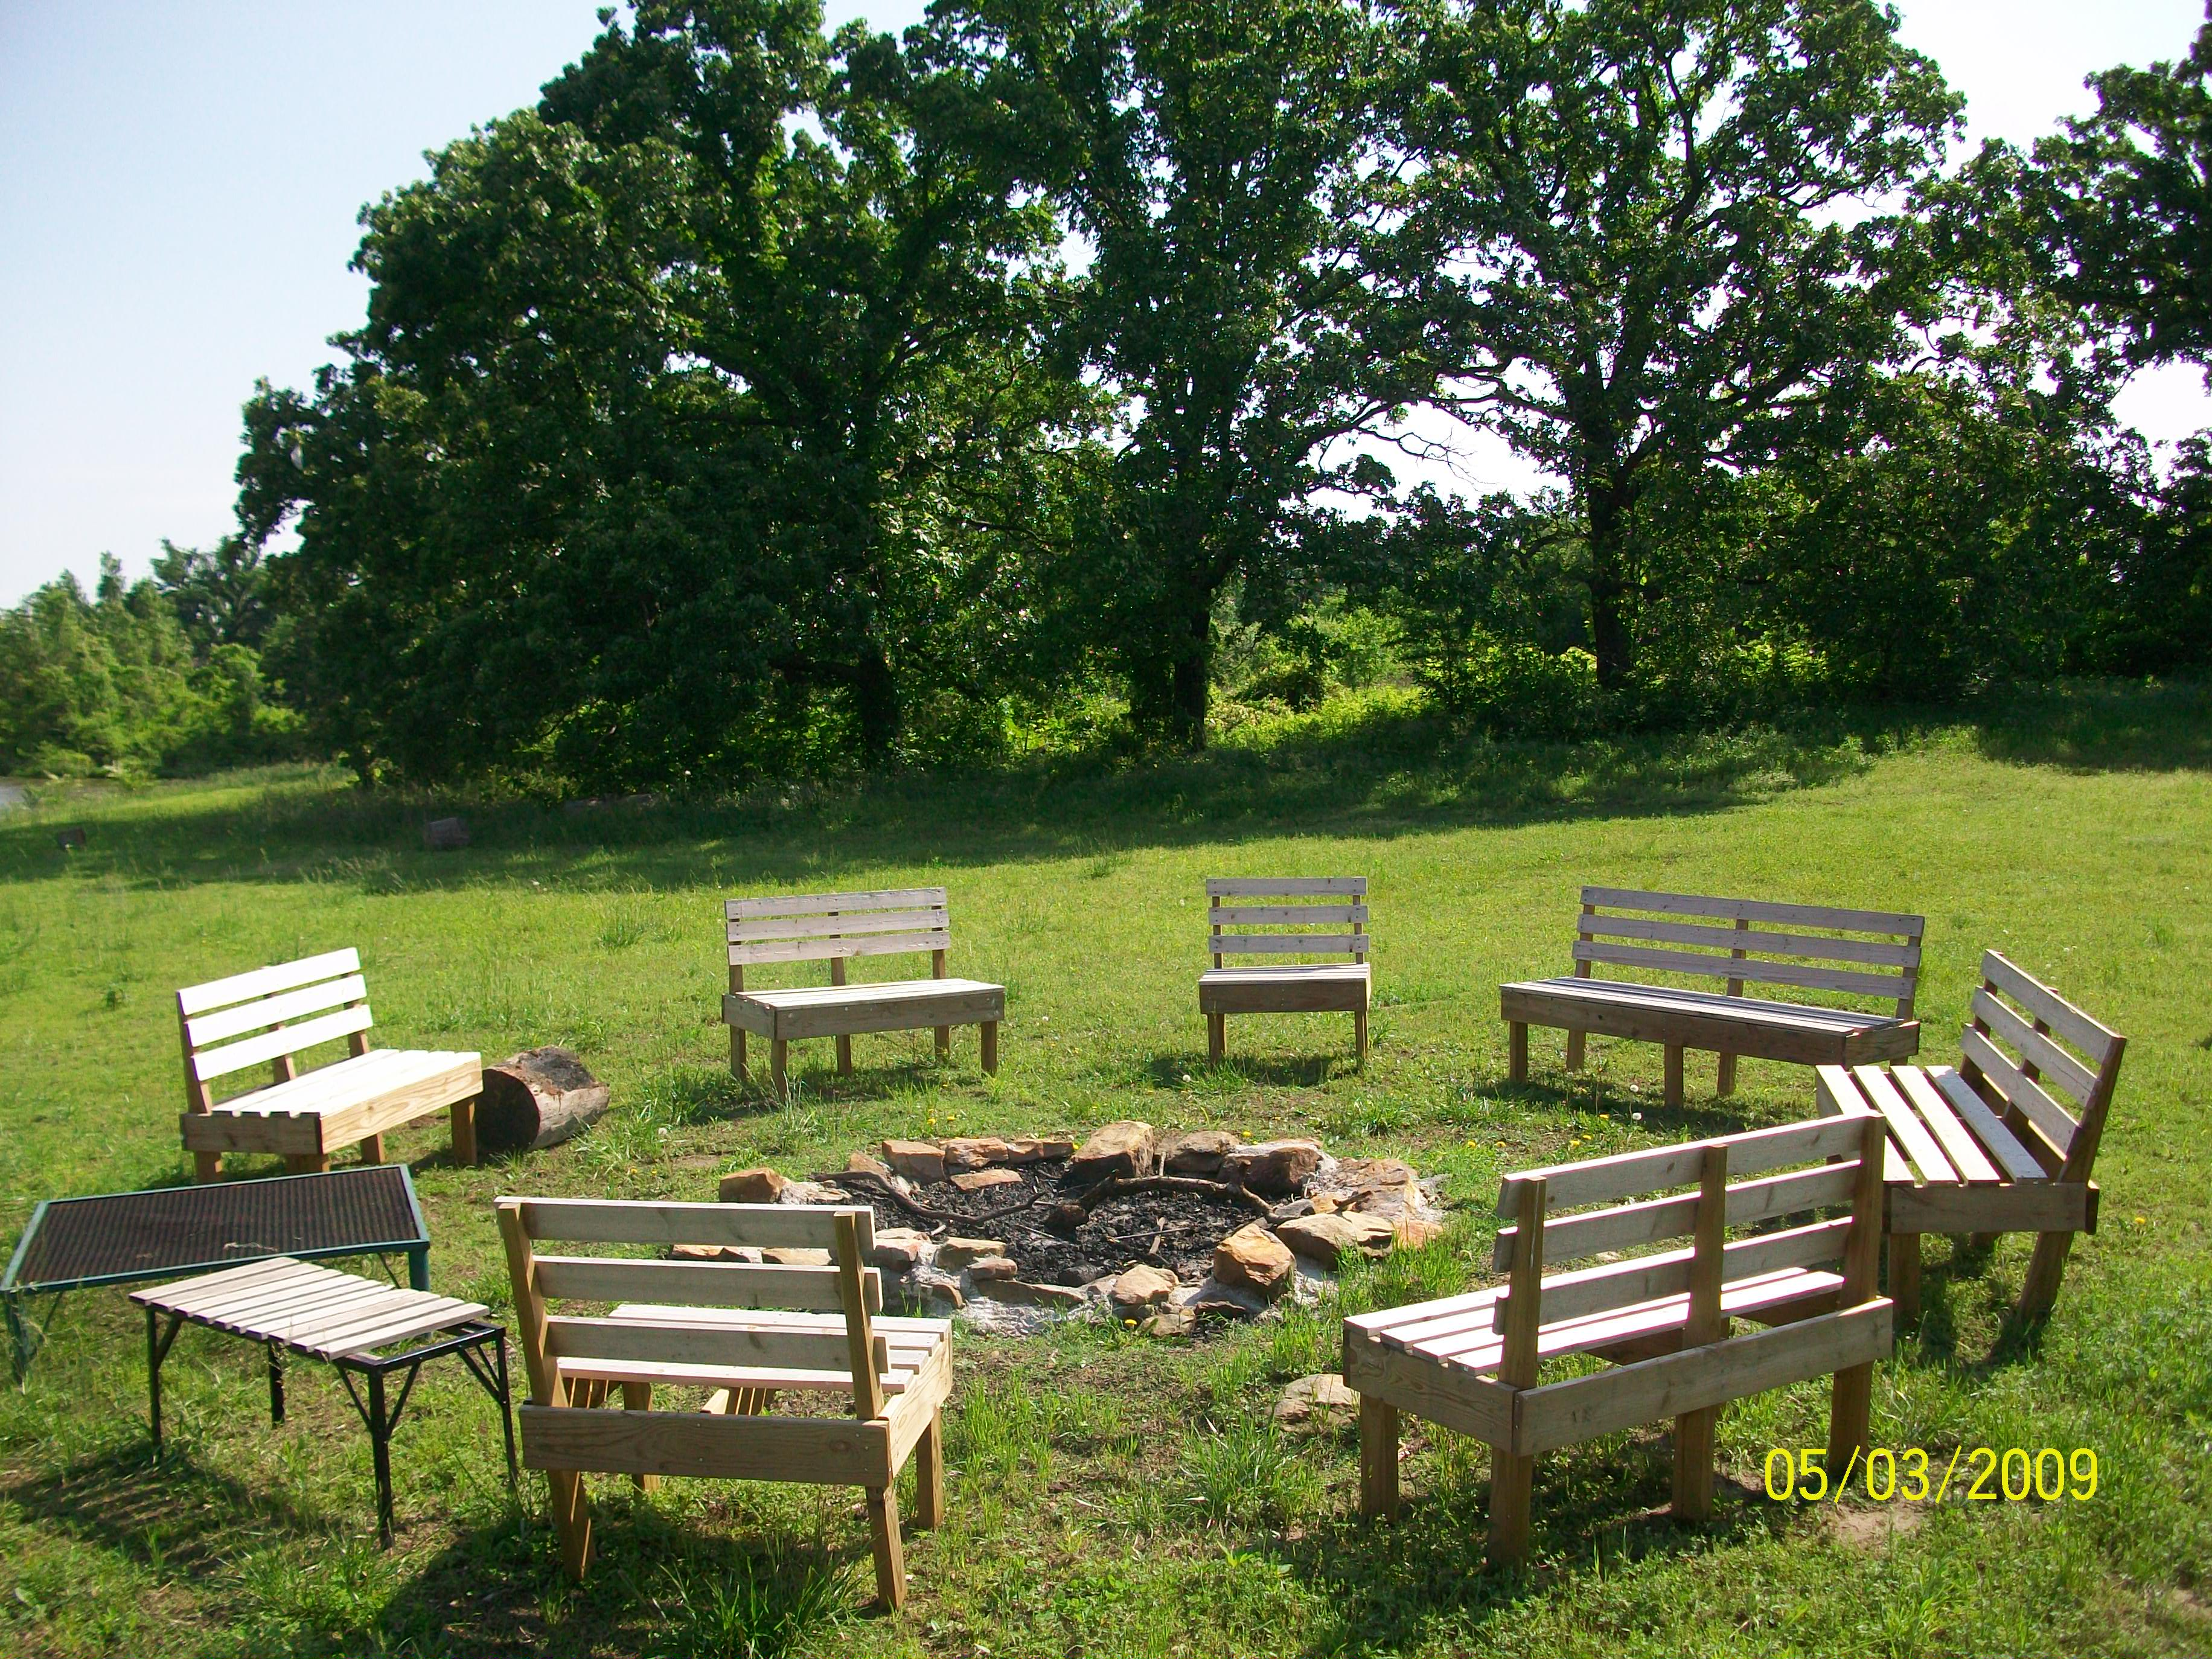 north-lake-fire-pit-and-benches